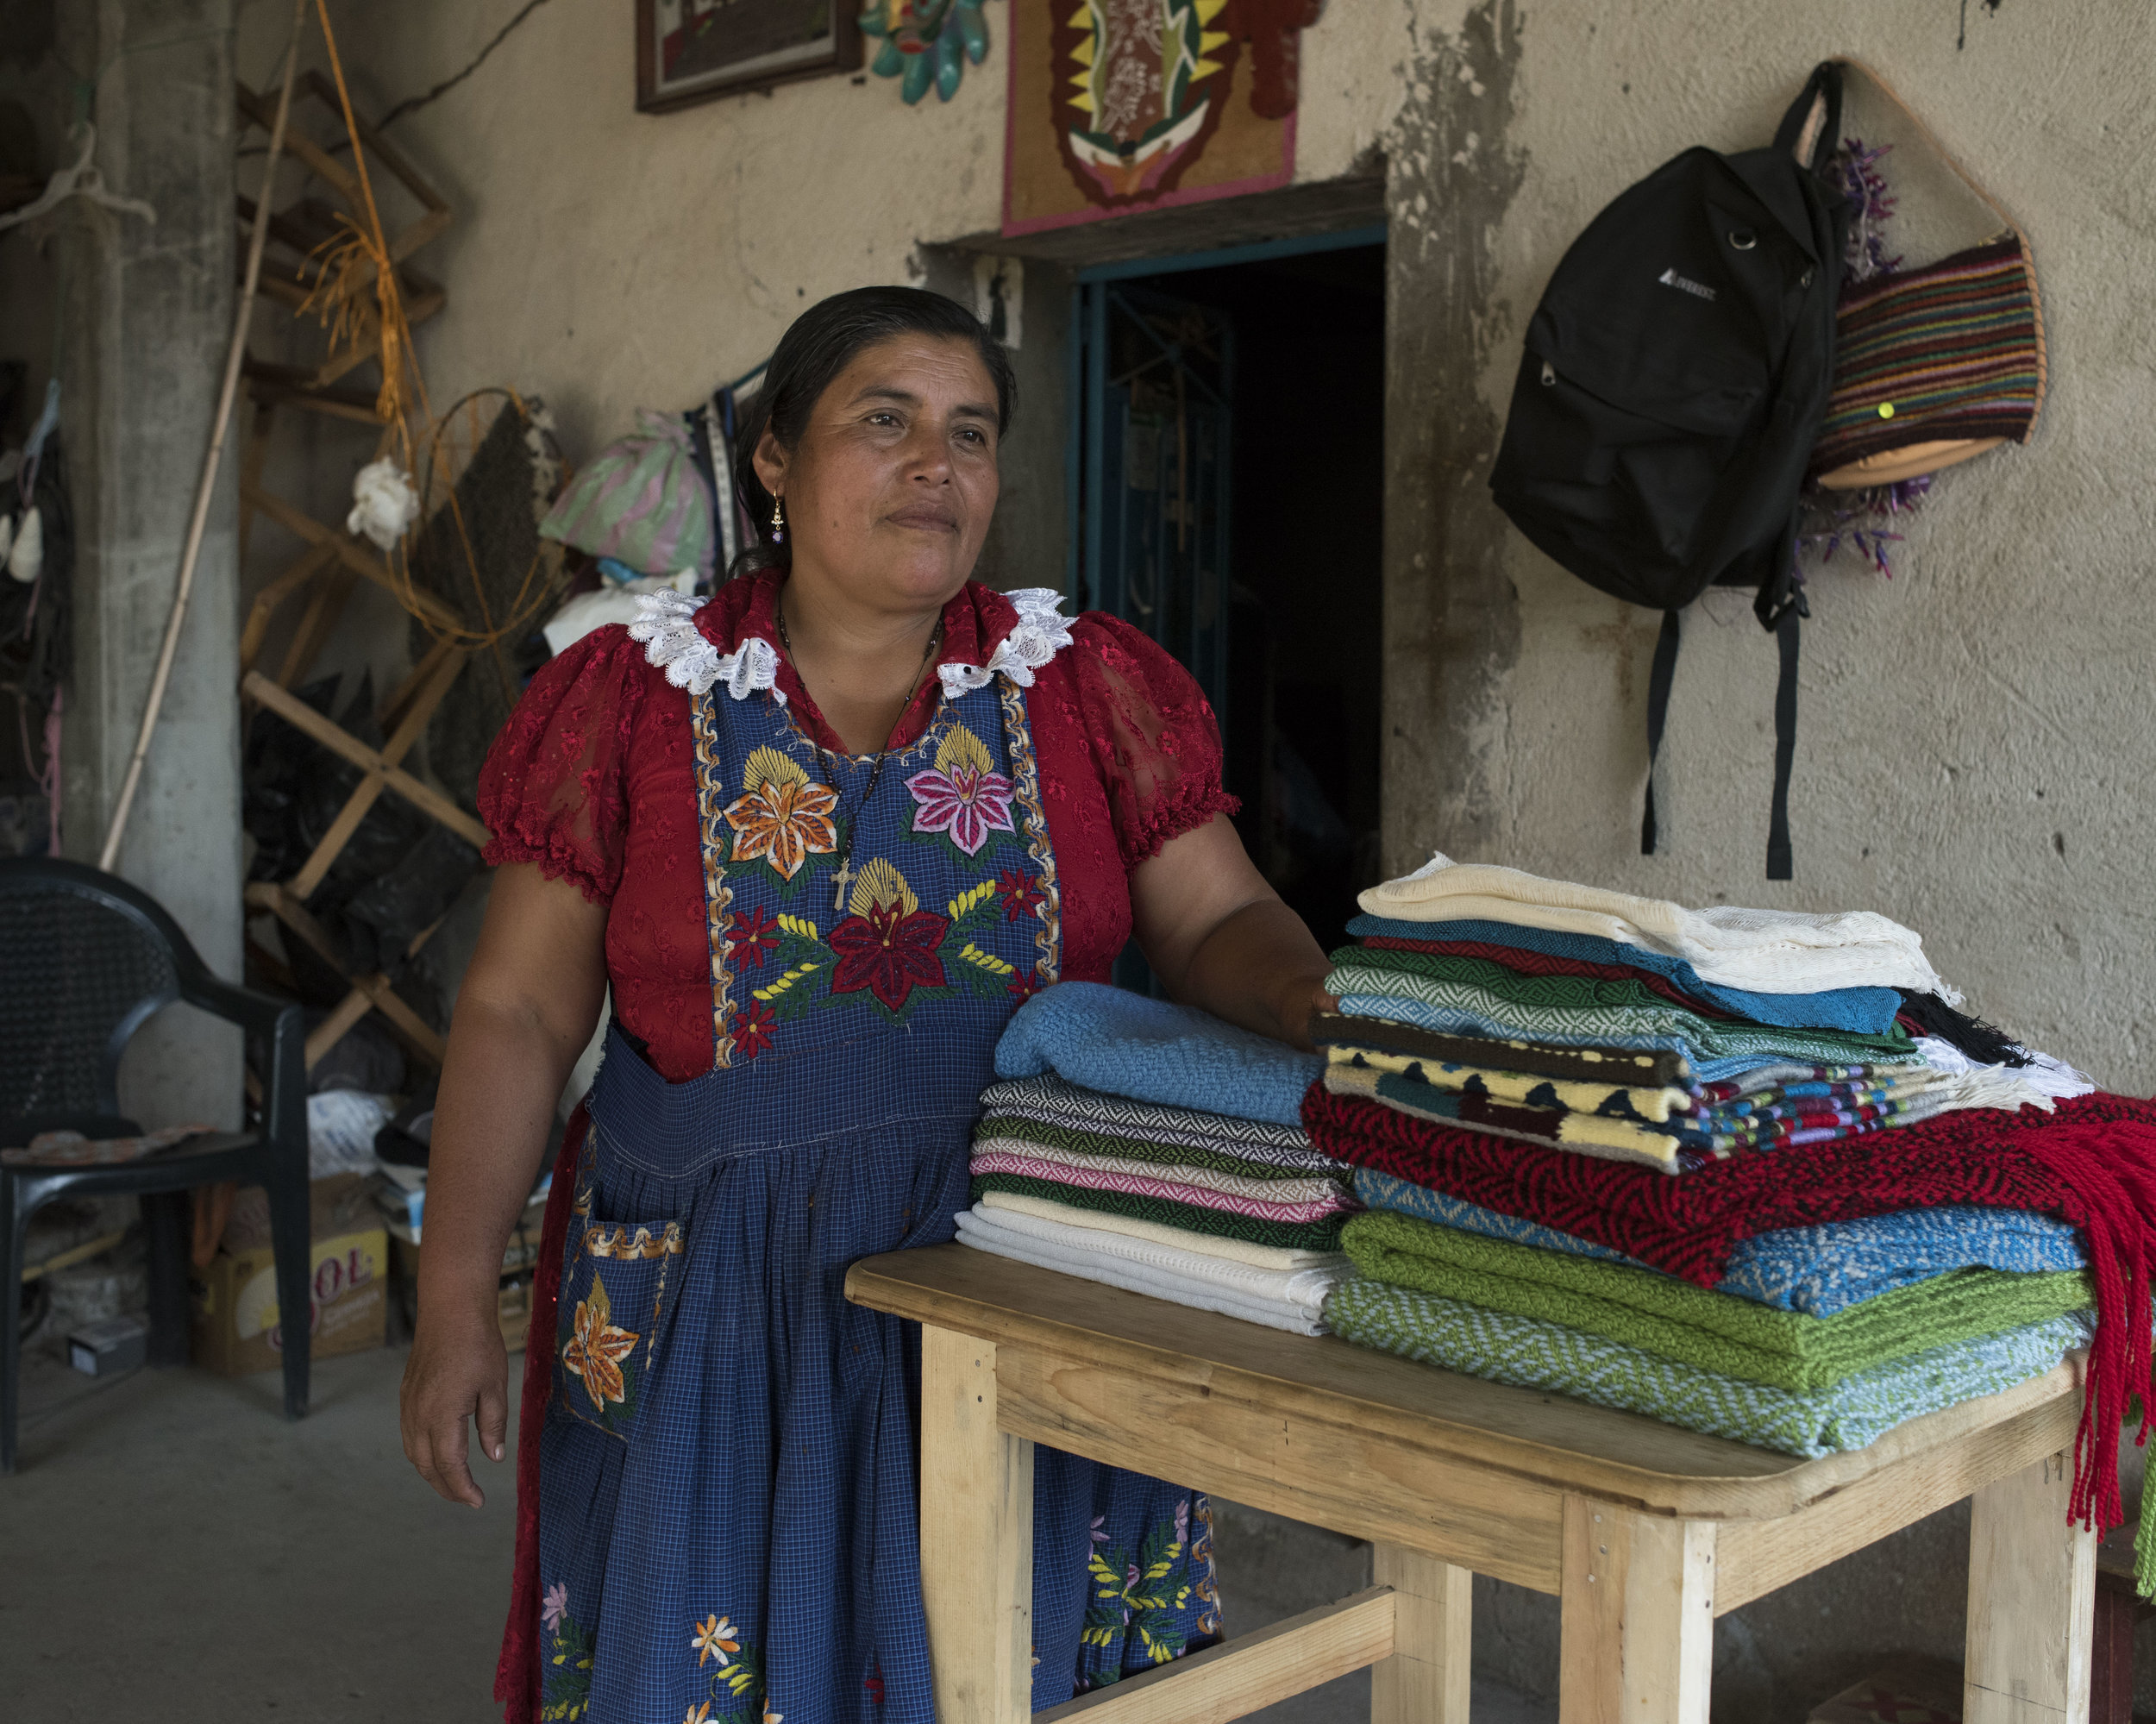 EN VIA… - is a non-profit organization that works to empower women to better support themselves and their families. Through funds generated through responsible tourism they are able to provide interest-free loans and educational programs to entrepreneurial women in 6 communities in the Tlacolula Valley of Oaxaca, Mexico. For more information on their programs and the women they serve, visit their website here.